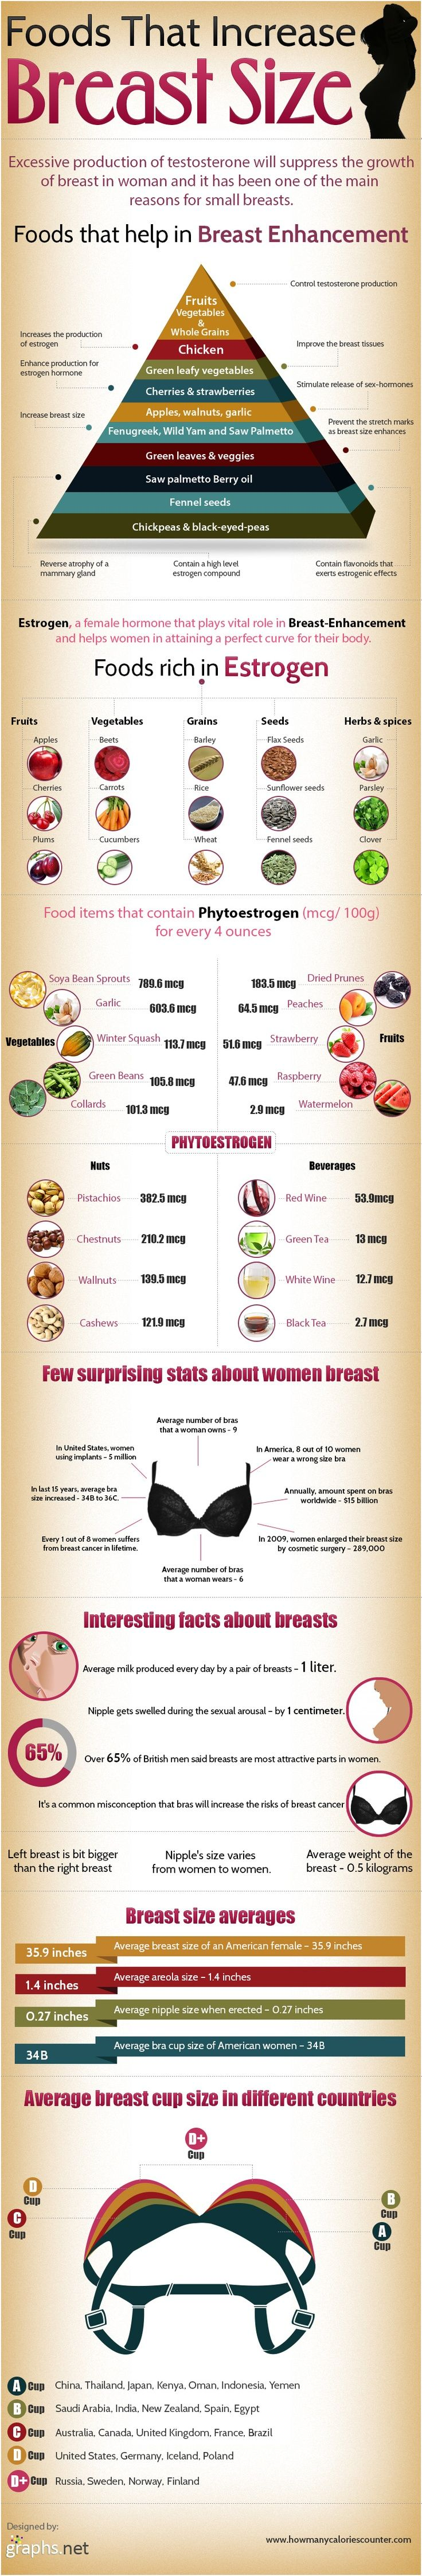 40 Best Tips To Make Your Breast Grow Bigger Images On -1058